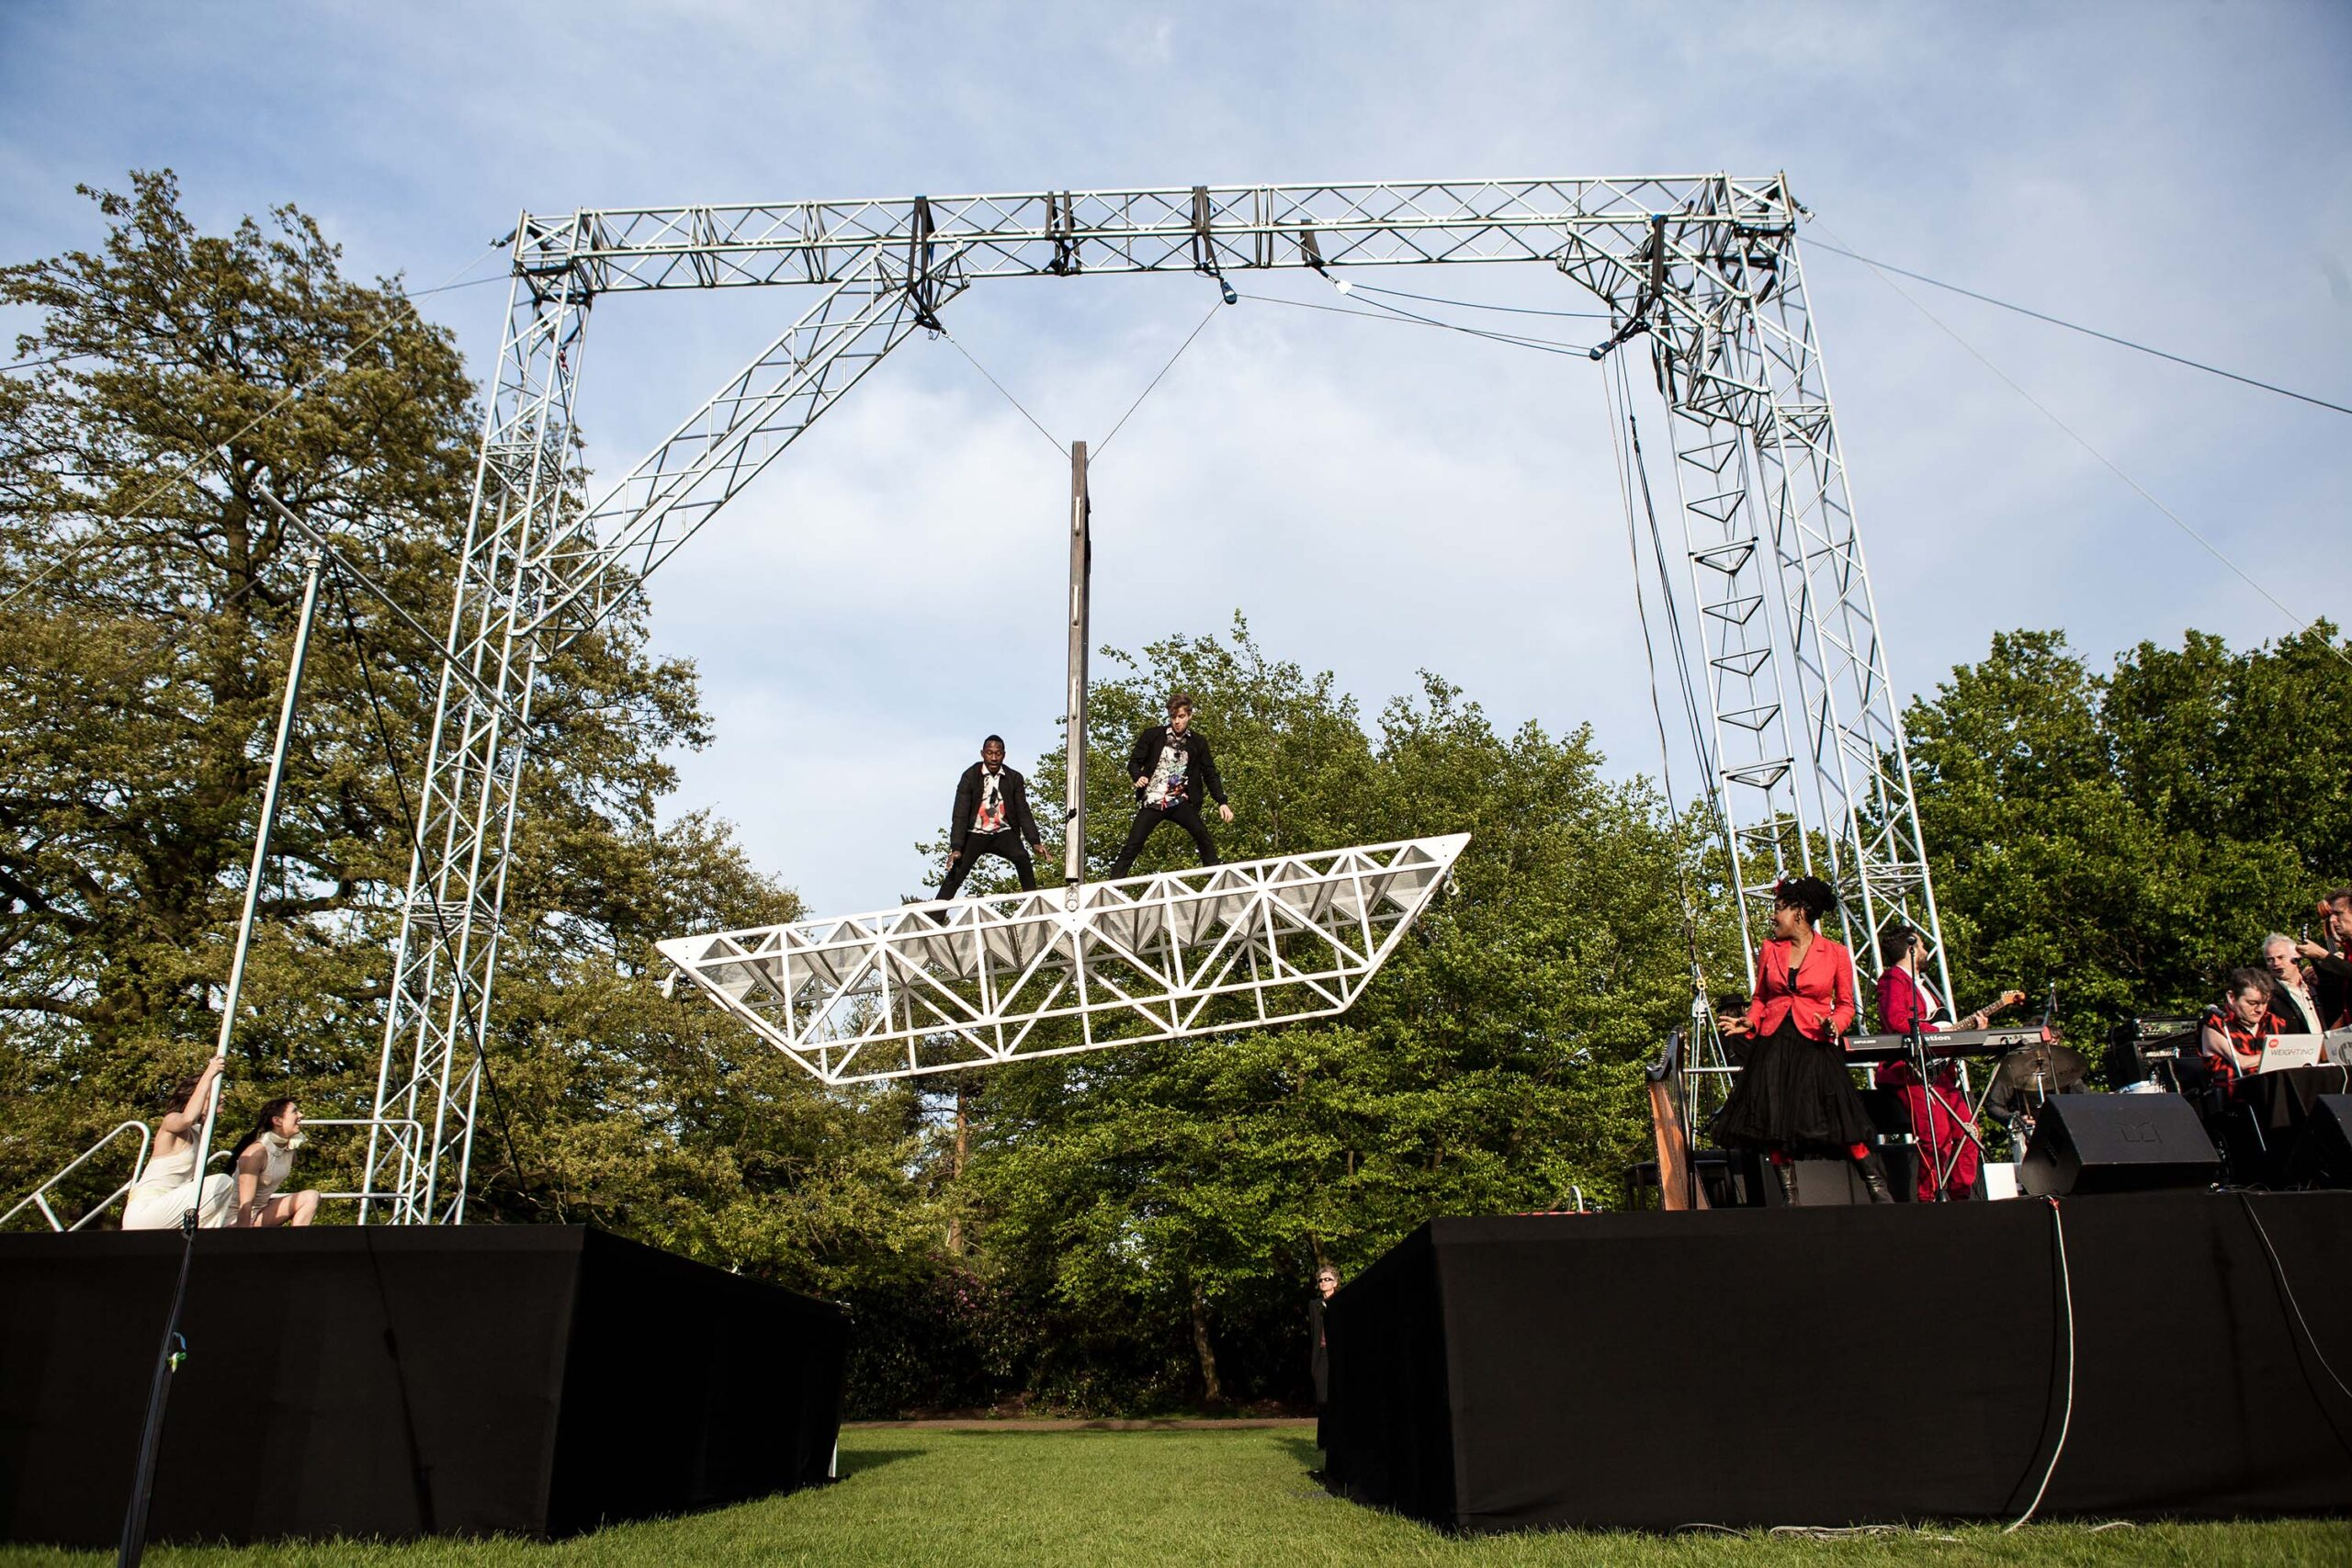 An outdoors circus stage with tall steel rigging. Two men stand on opposite ends of a 6 meters long bridge made of white metal. It is up in the air and acting as a balance, held in its centre by a large metal bar that allows it to balance to the left and to the right.